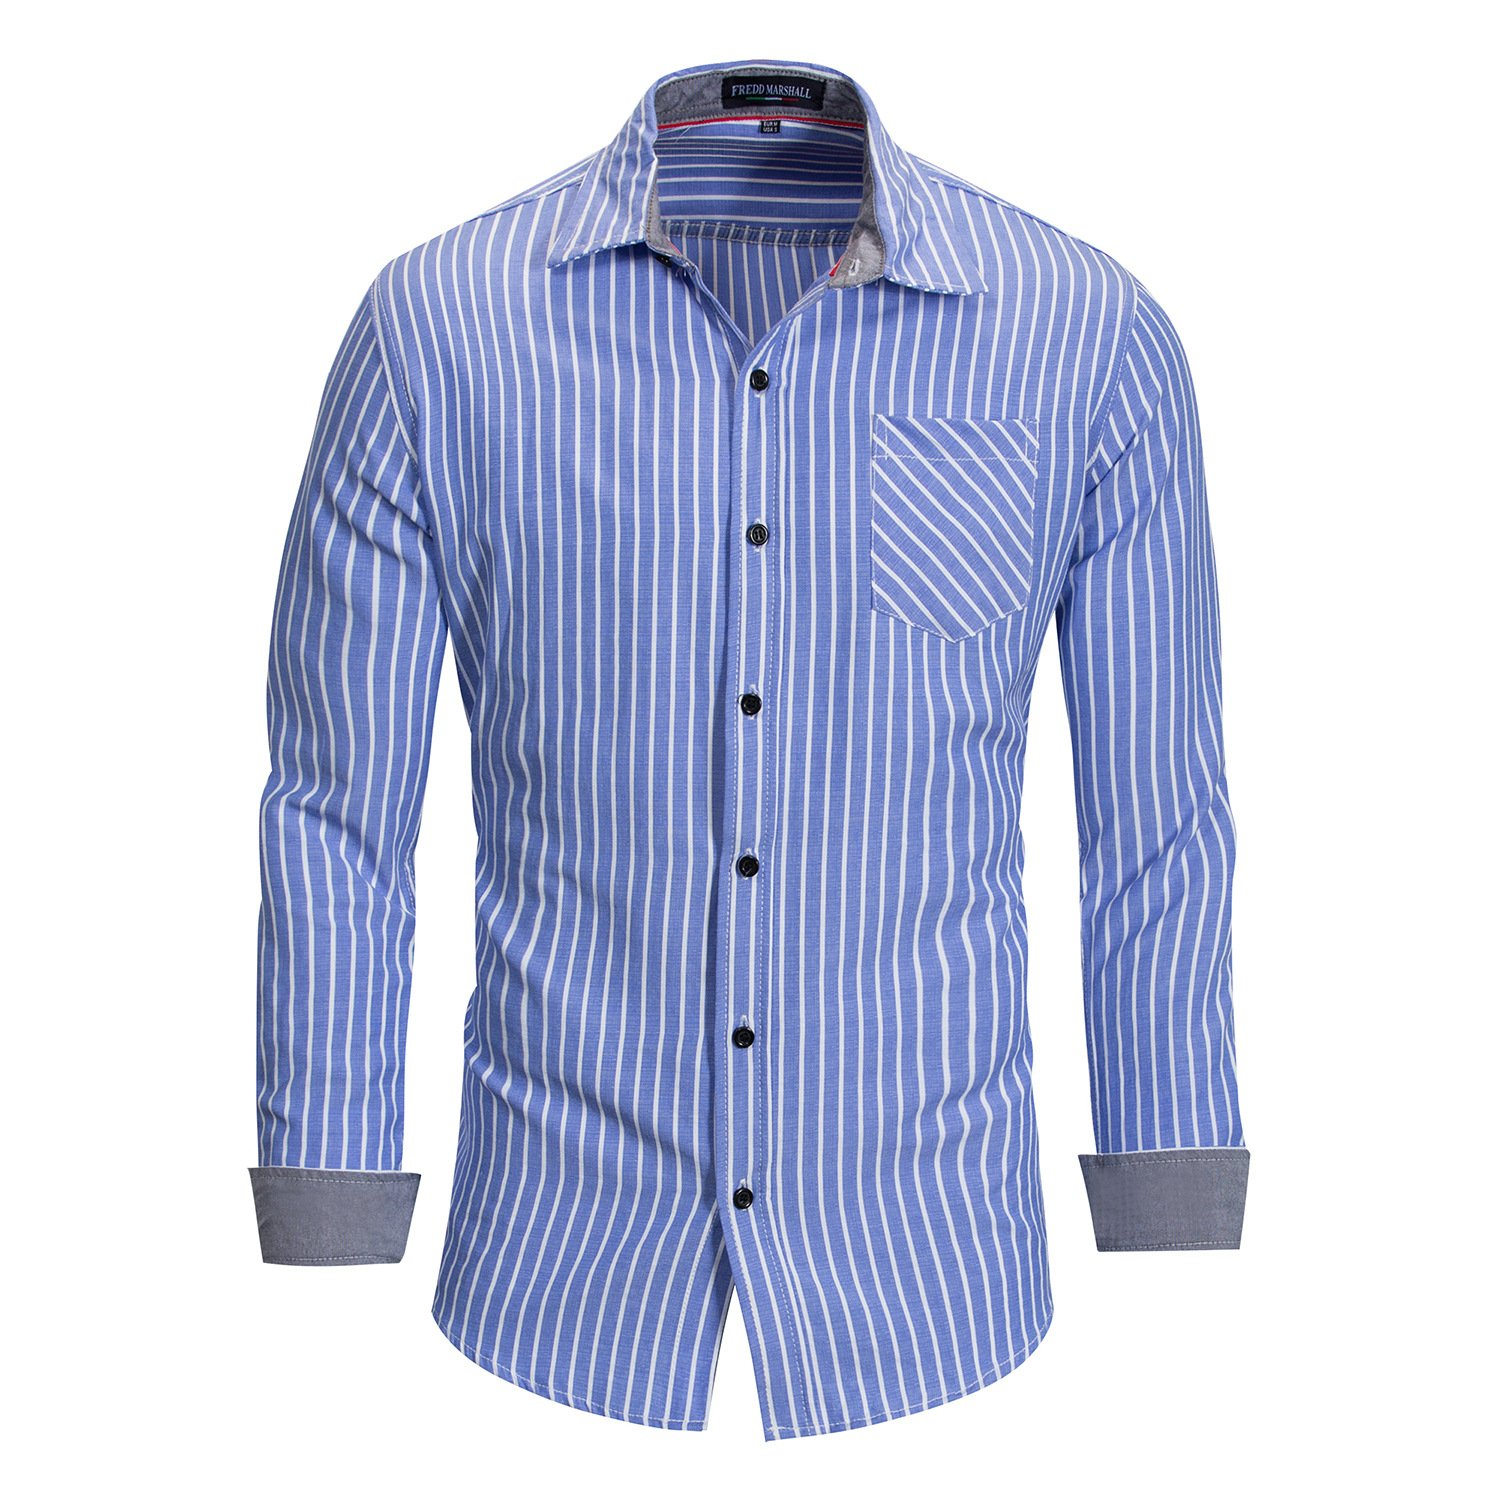 JJCat Mens Button-Down Collar Long Sleeve Cotton Design Thin Stripes Classical Style Work Casual Shirts